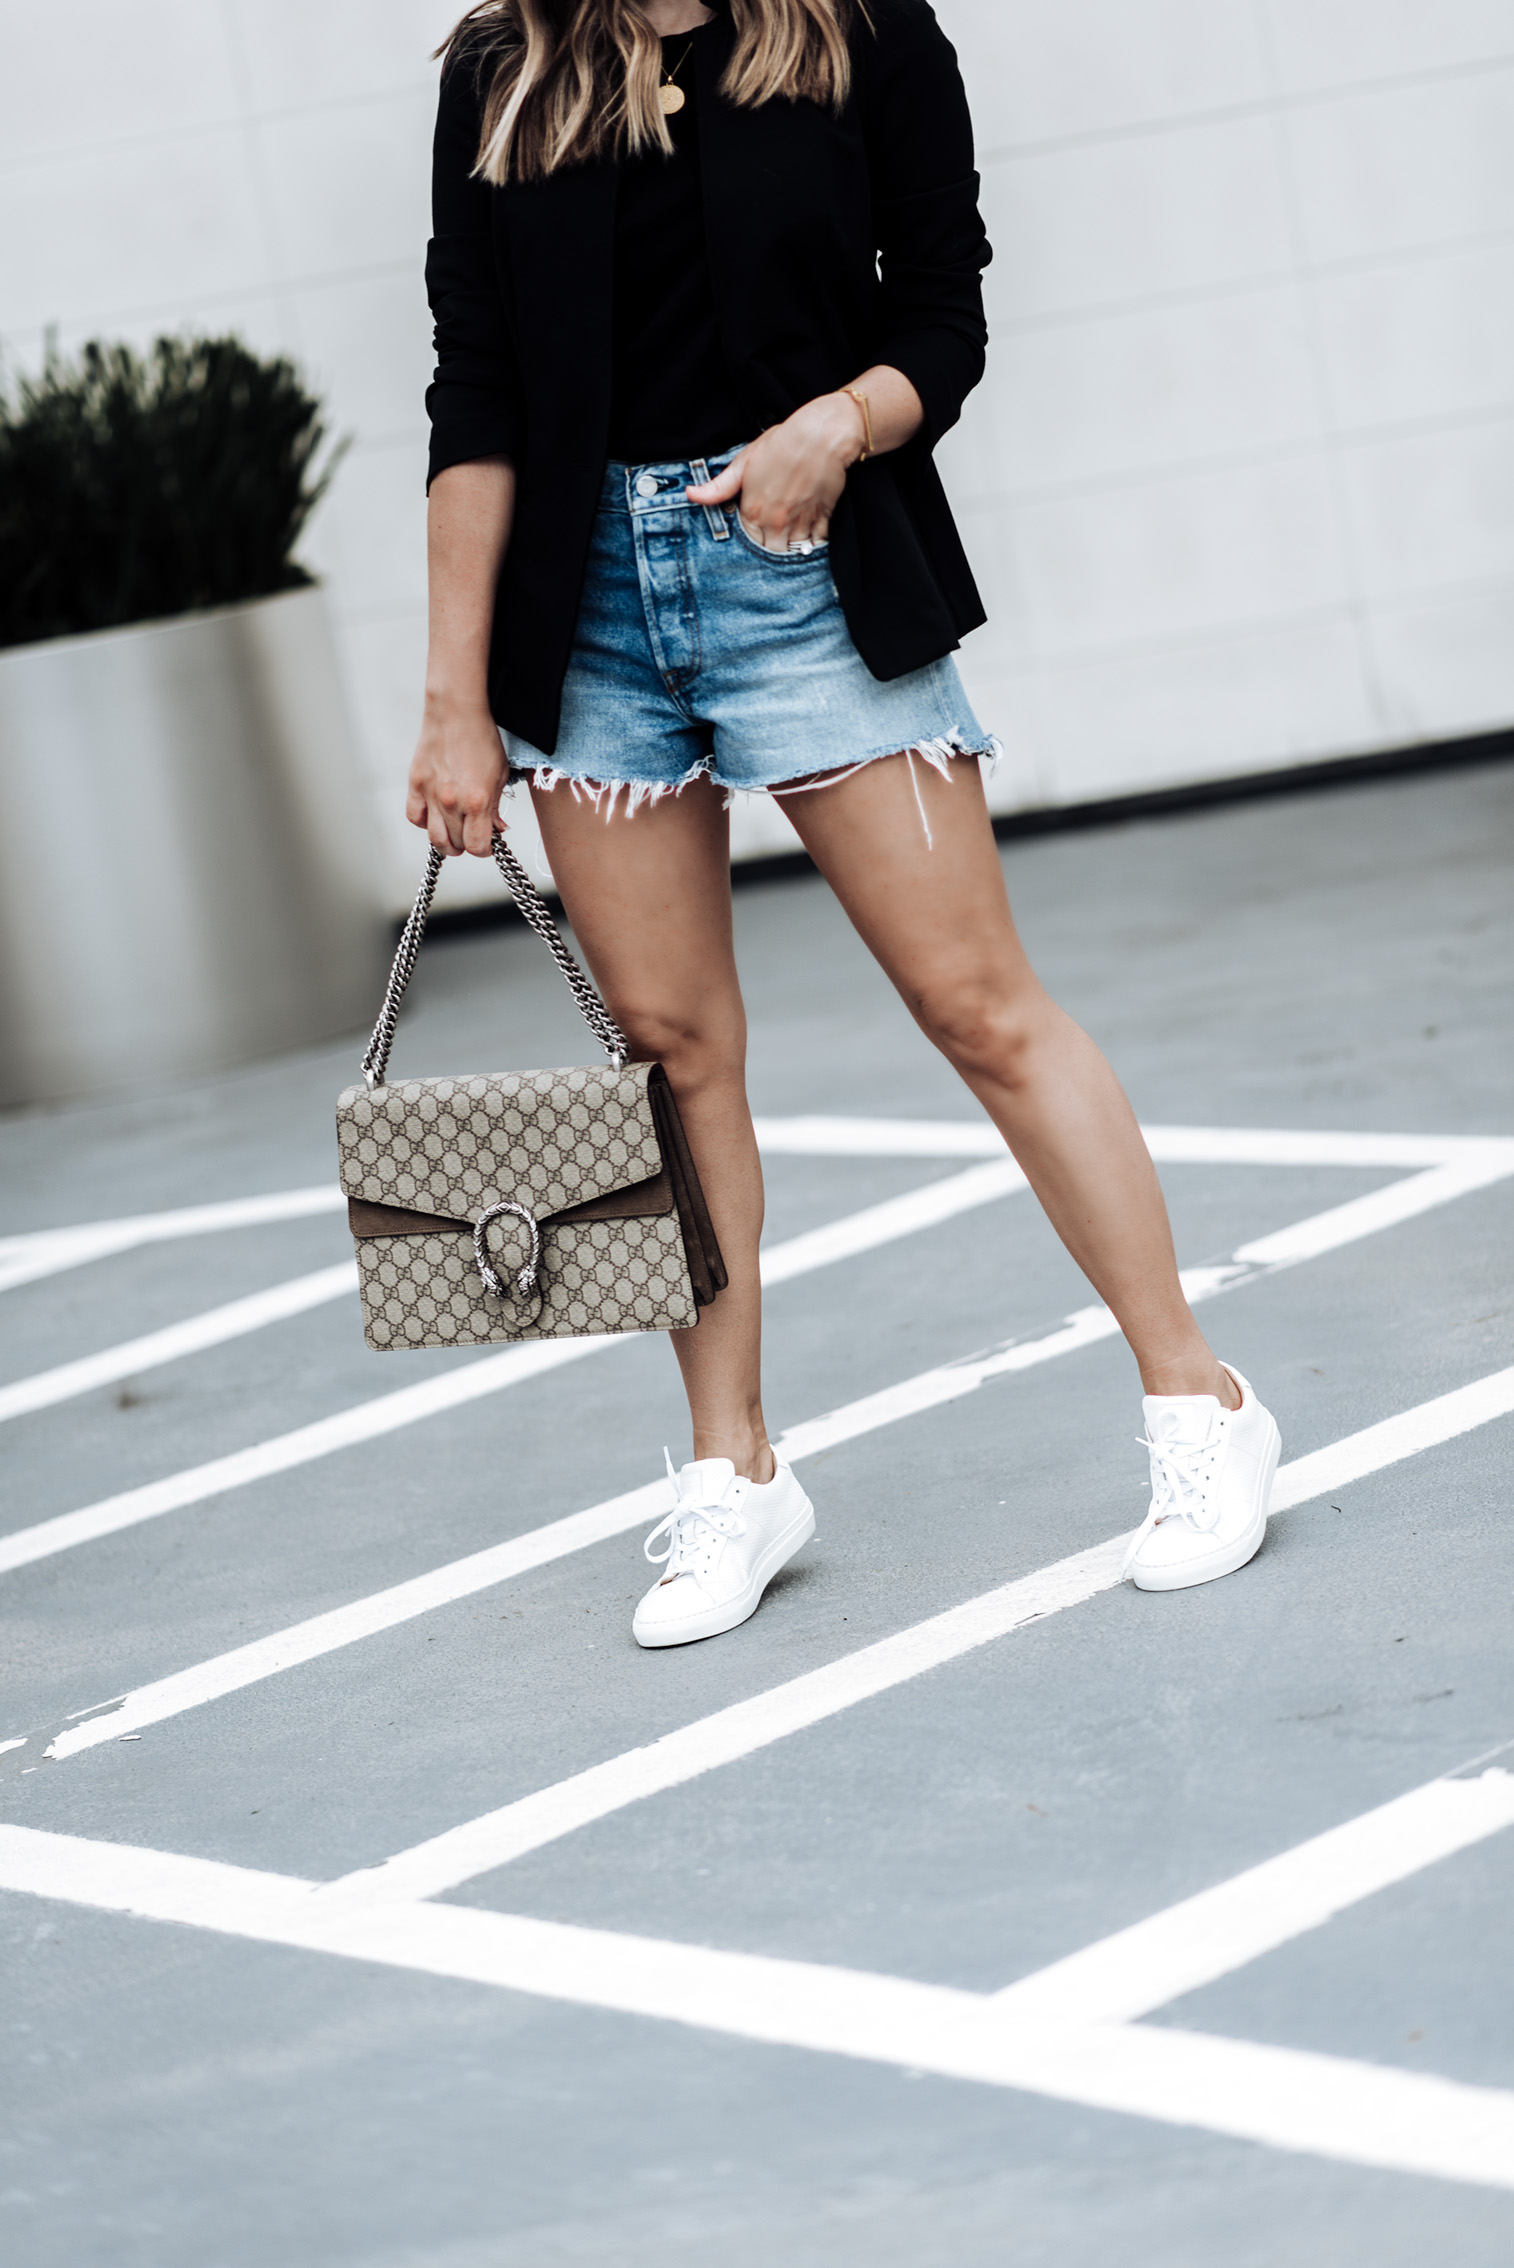 Tiffany Jais Houston fashion and lifestyle blogger | Fall must have pieces with Banana Republic, click to shop the look | Sneaker fashion, Longline Blazer | Basic Black Tee | Greats sneakers | Parker Distressed Denim Shorts | Marie Pendant